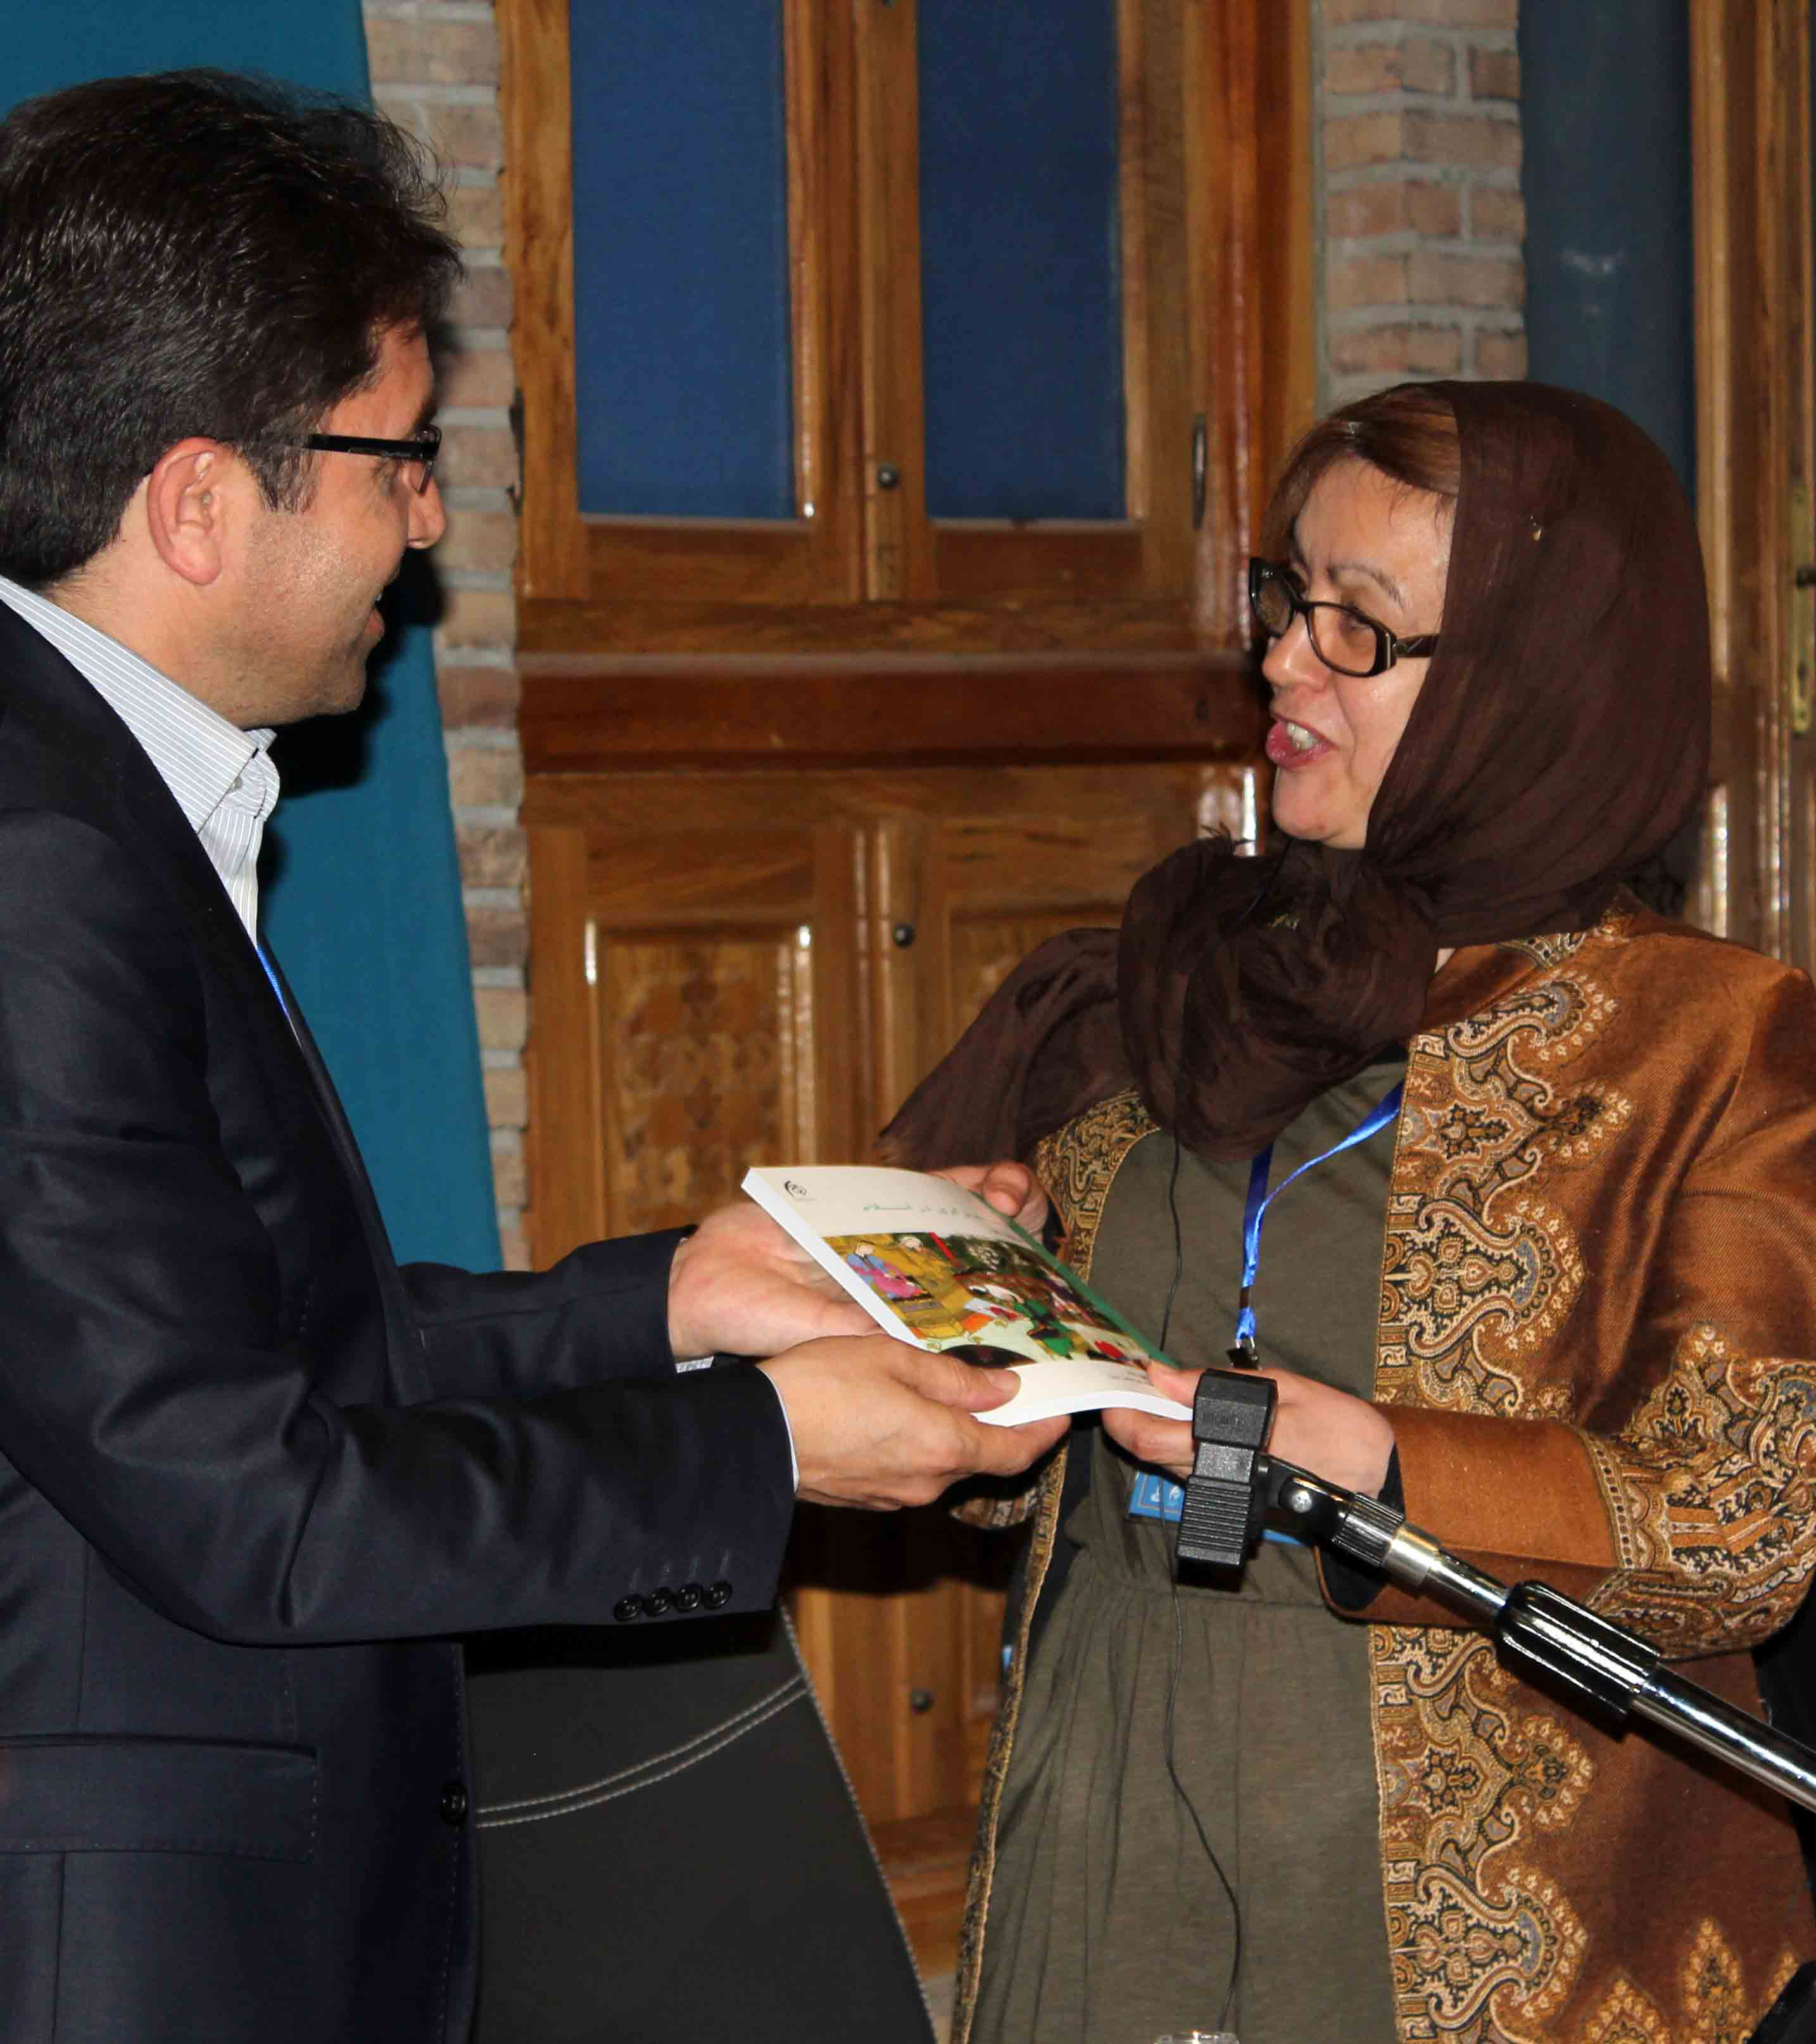 The unveiling ceremony of a book Dr.Mehdi Mohammadzadeh